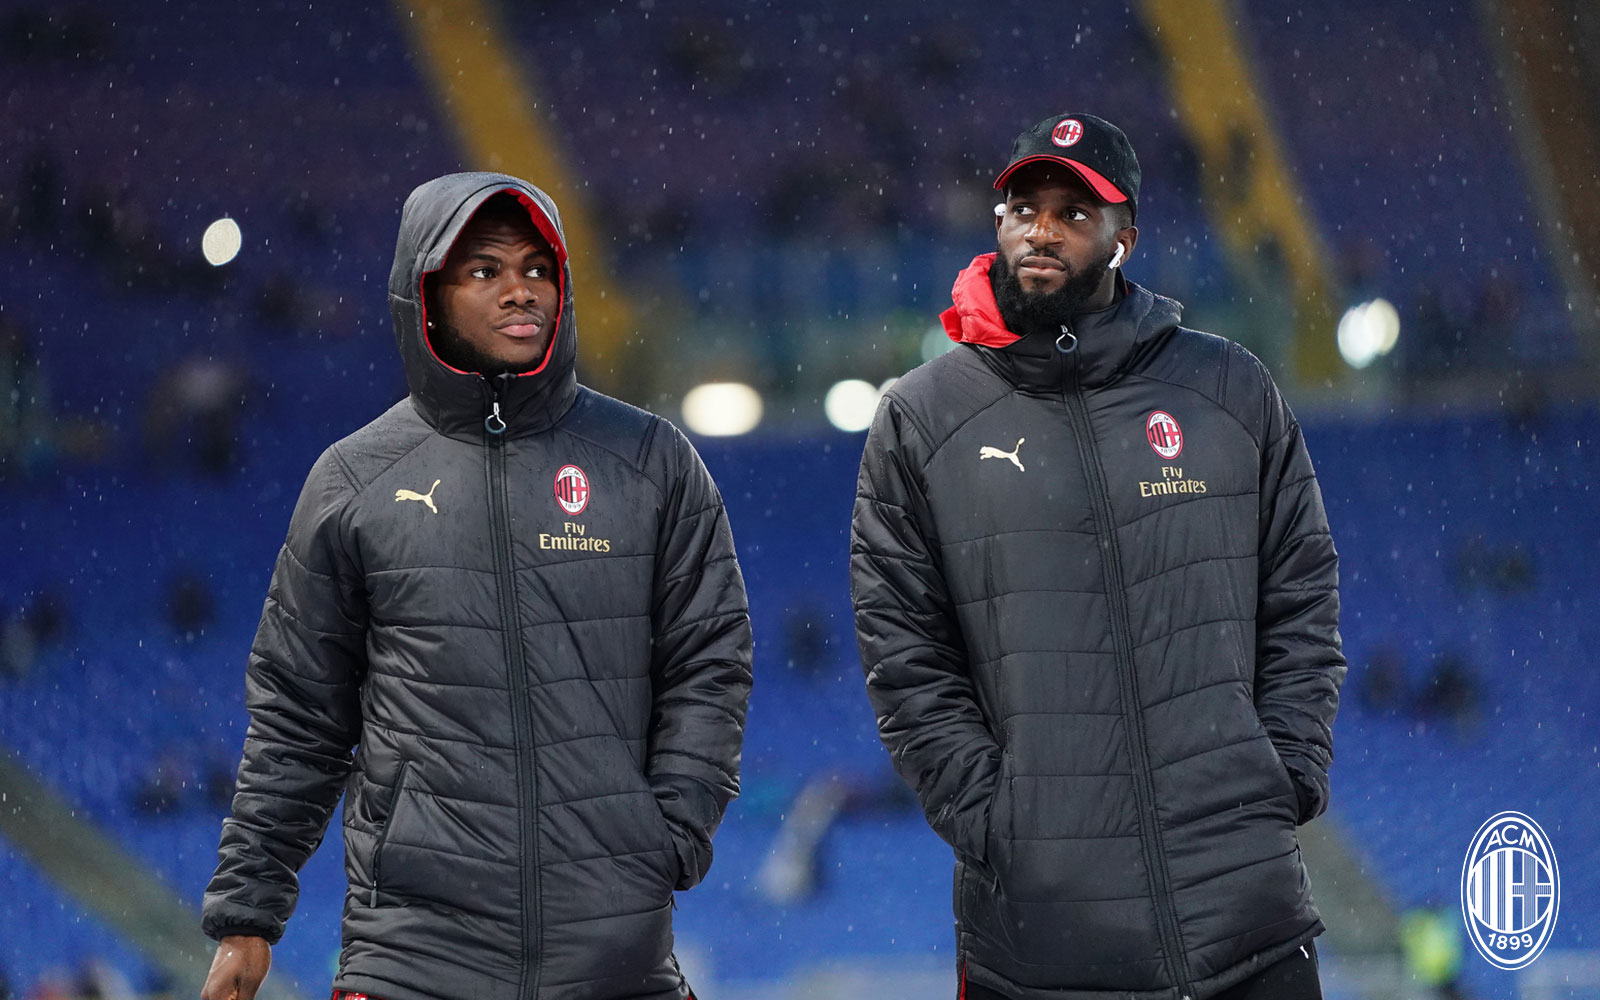 Tiémoué Bakayoko and Franck Kessié before Lazio-Milan at Stadio Olimpico on November 25, 2018. (@acmilan.com)